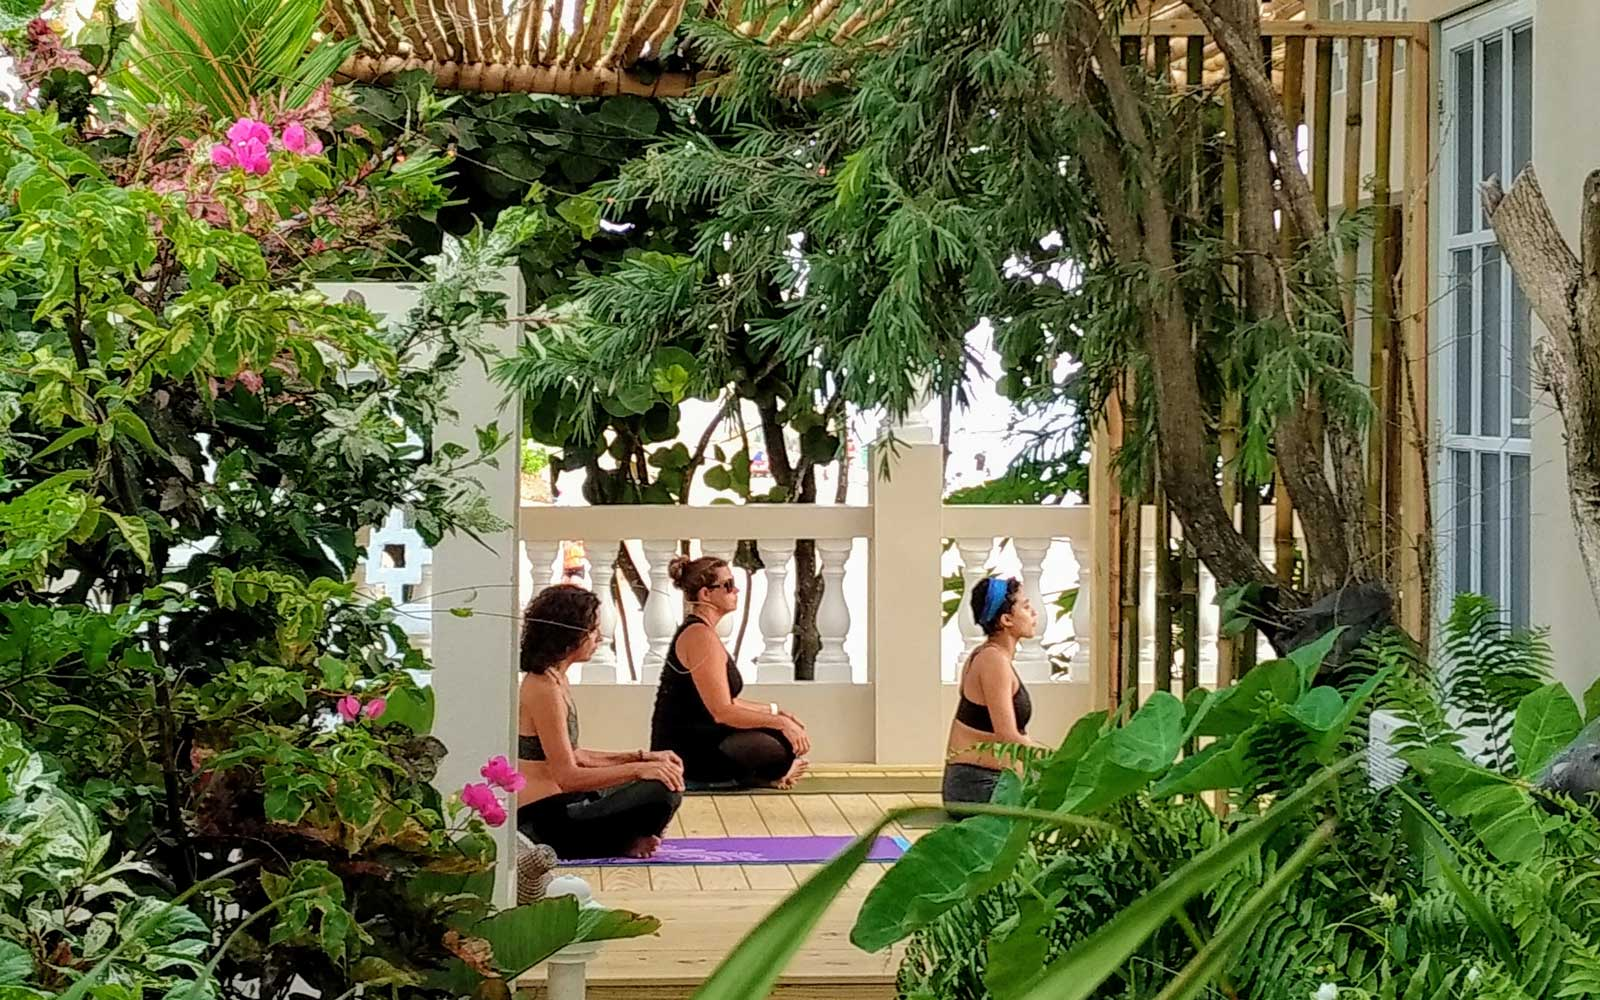 Yoga deck at Tres Sirenas hotel in Puerto Rico